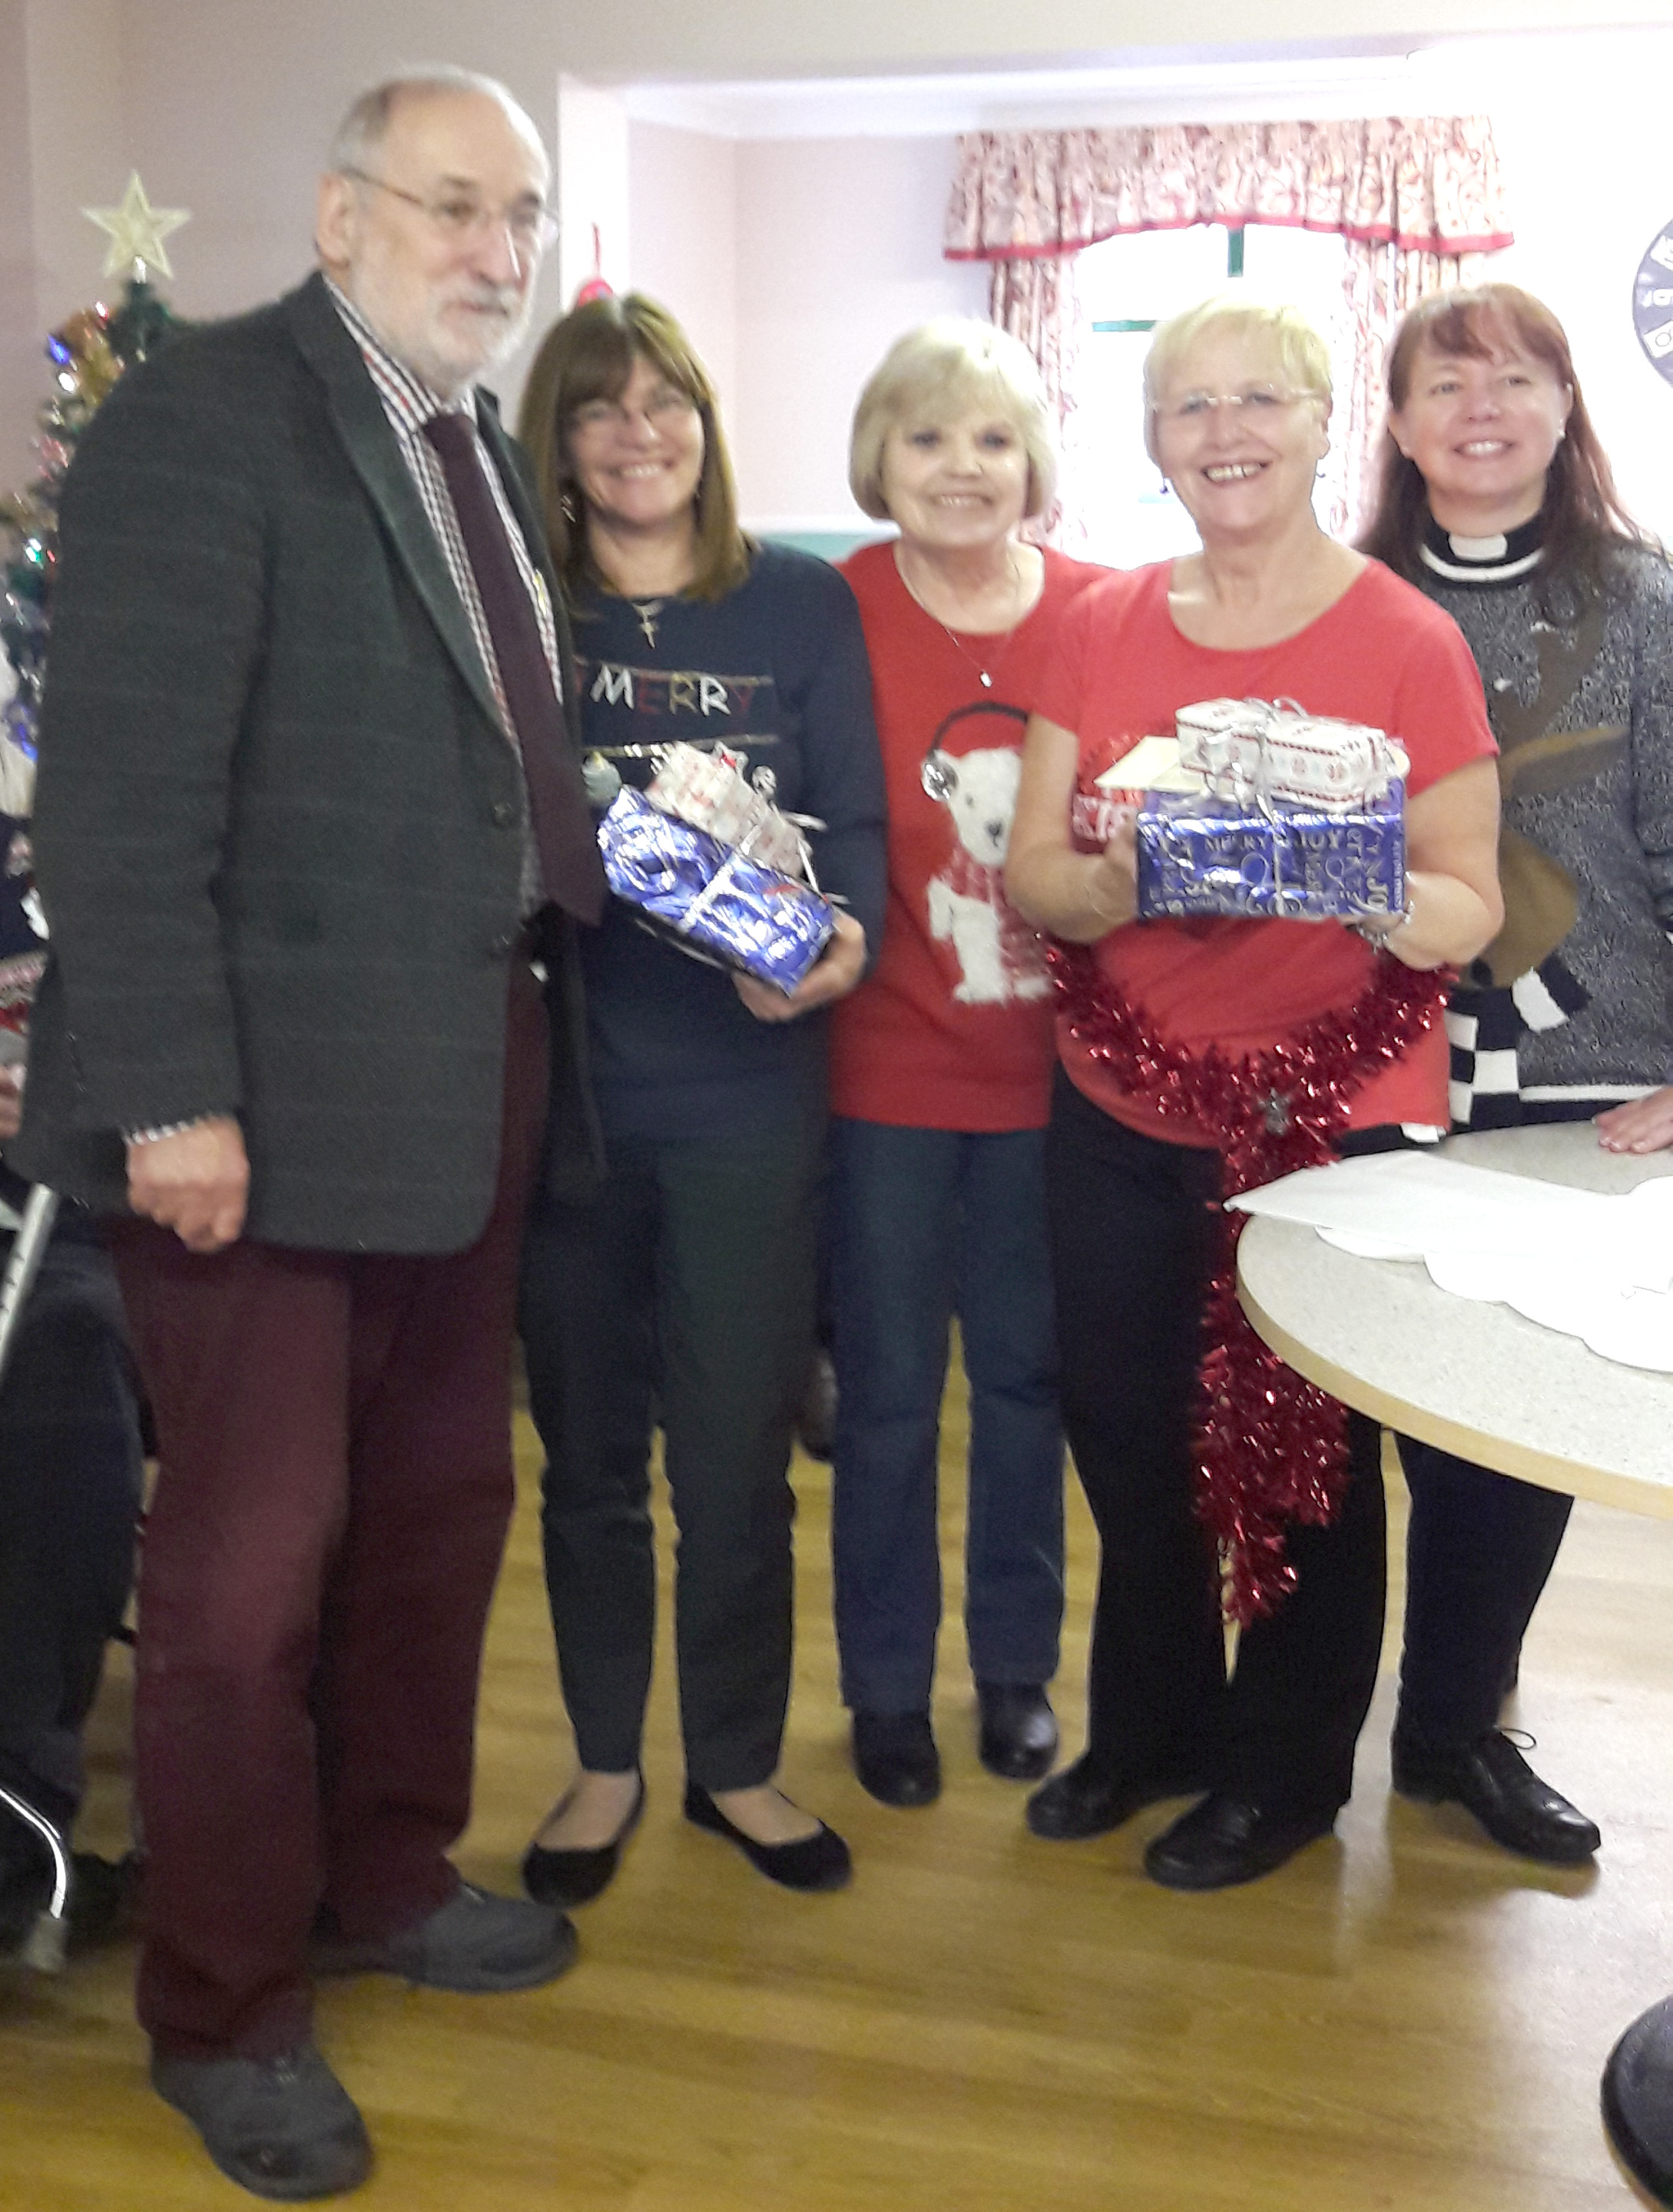 St. Clare's Christmas Services in Care Homes